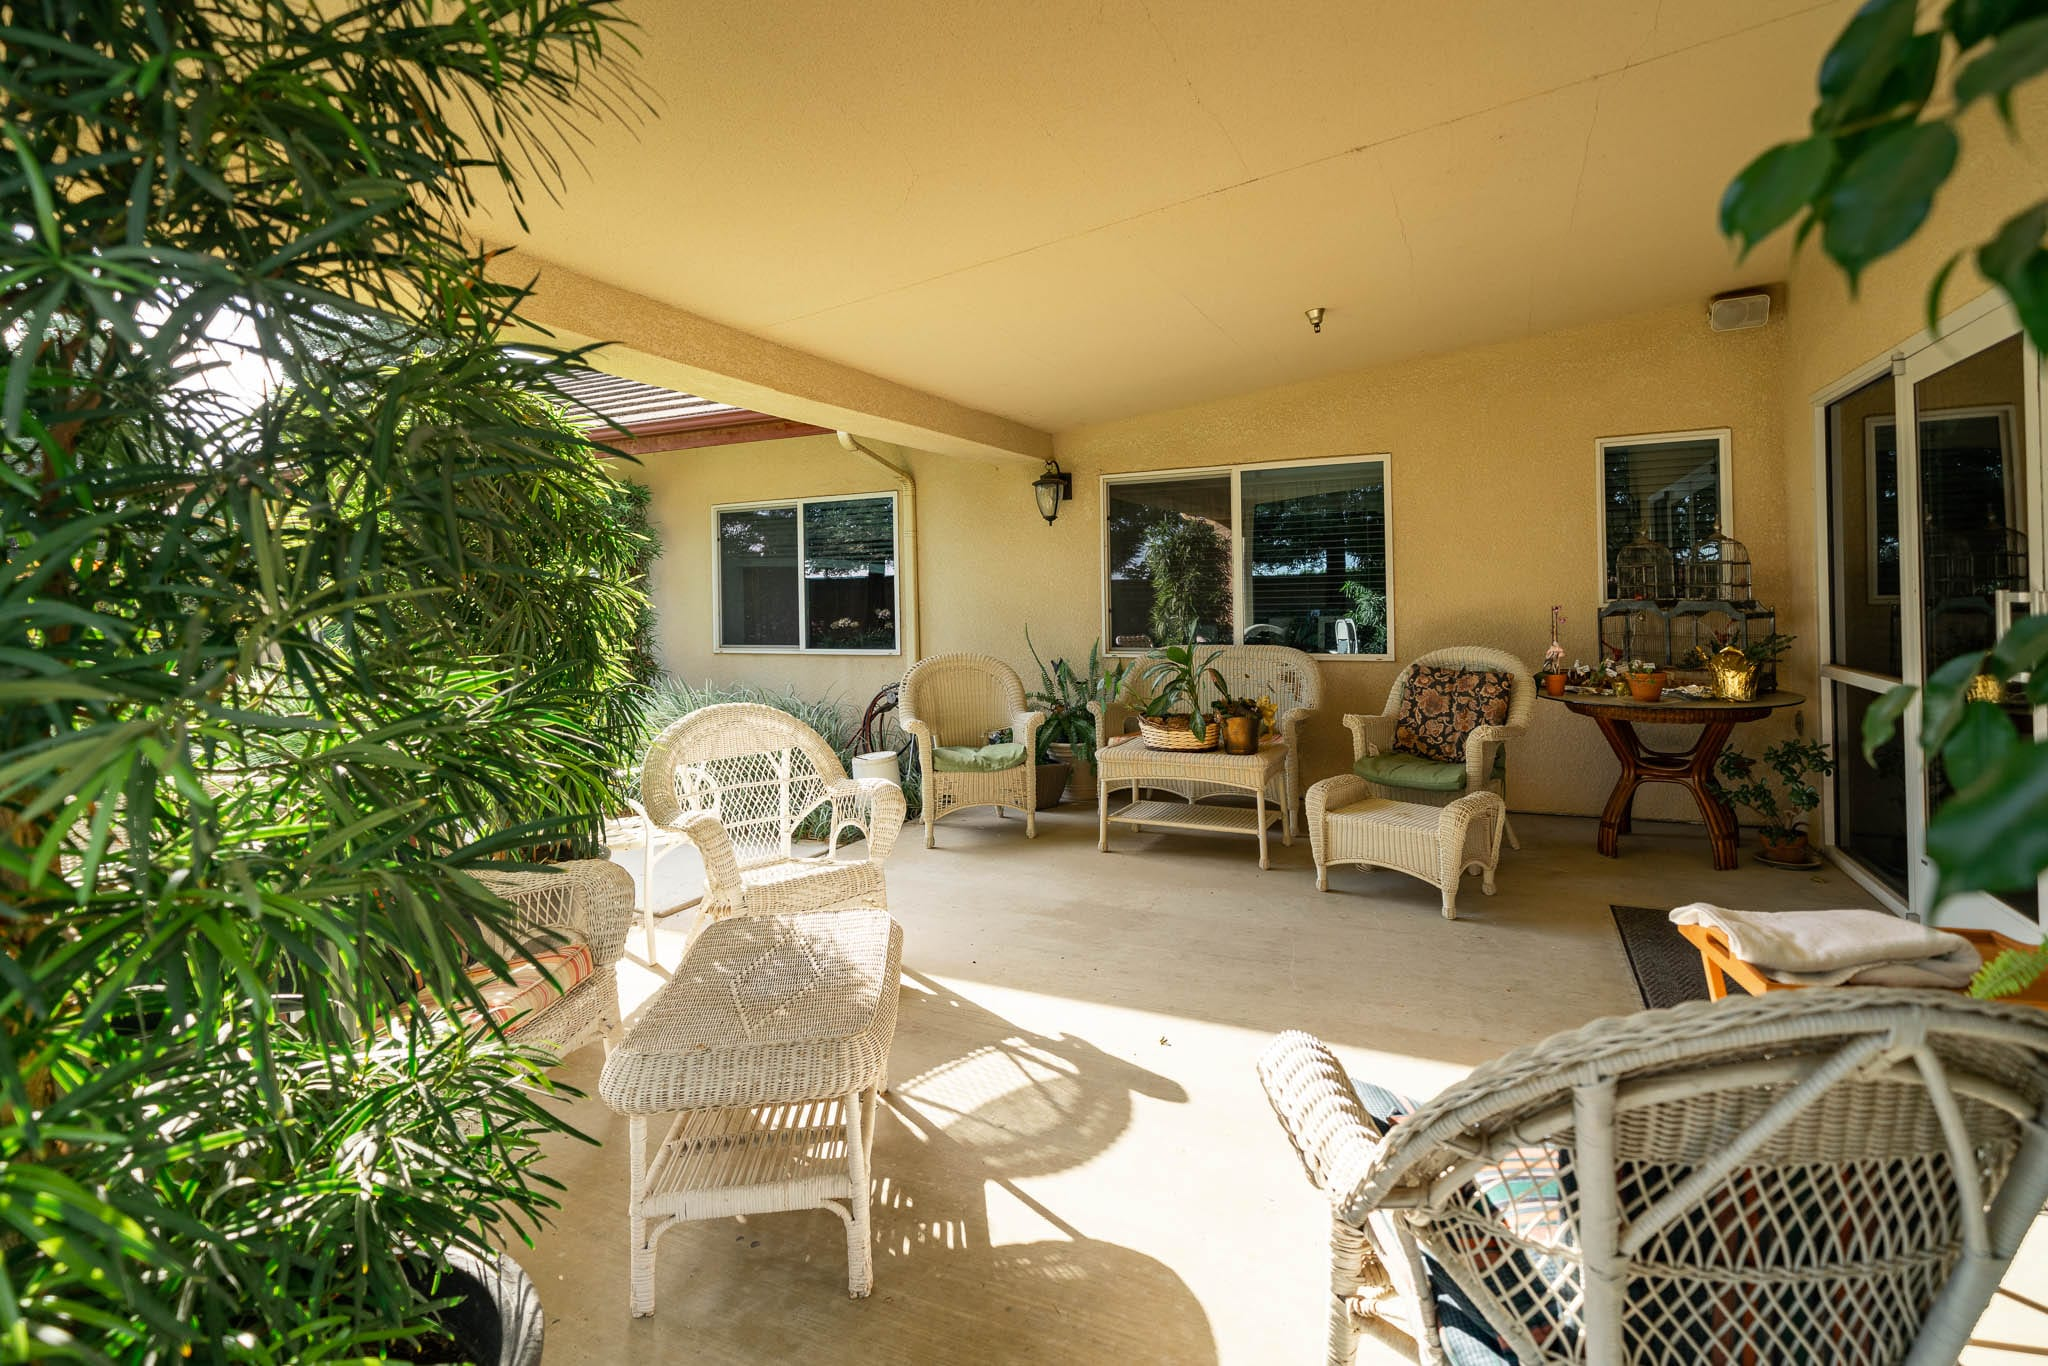 Patio Seating at Sierra Village Assisted Living Center